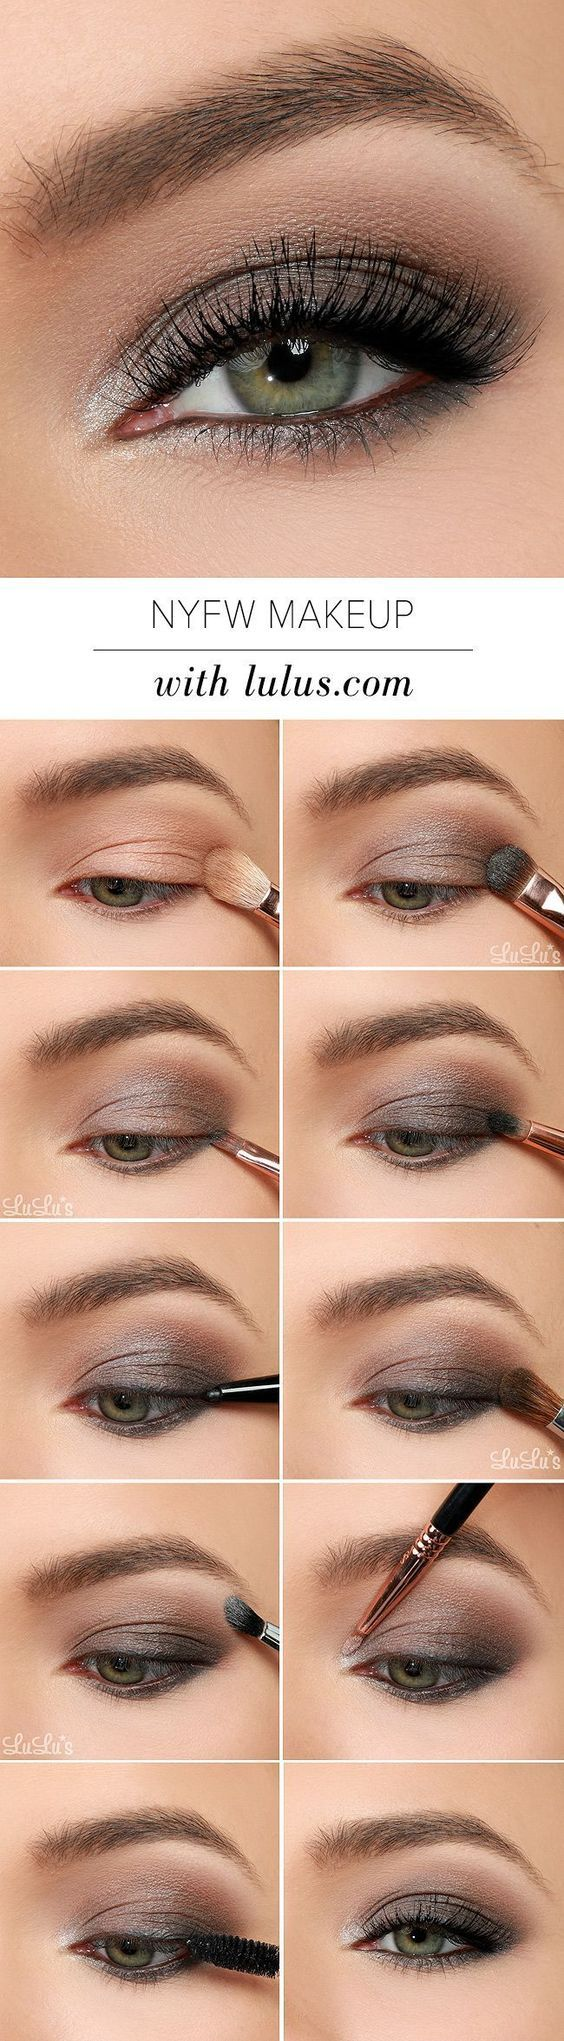 20 Amazing Eye Makeup Ideas For Every Occasion Beauty & Personal Care : http://amzn.to/2irNRWU